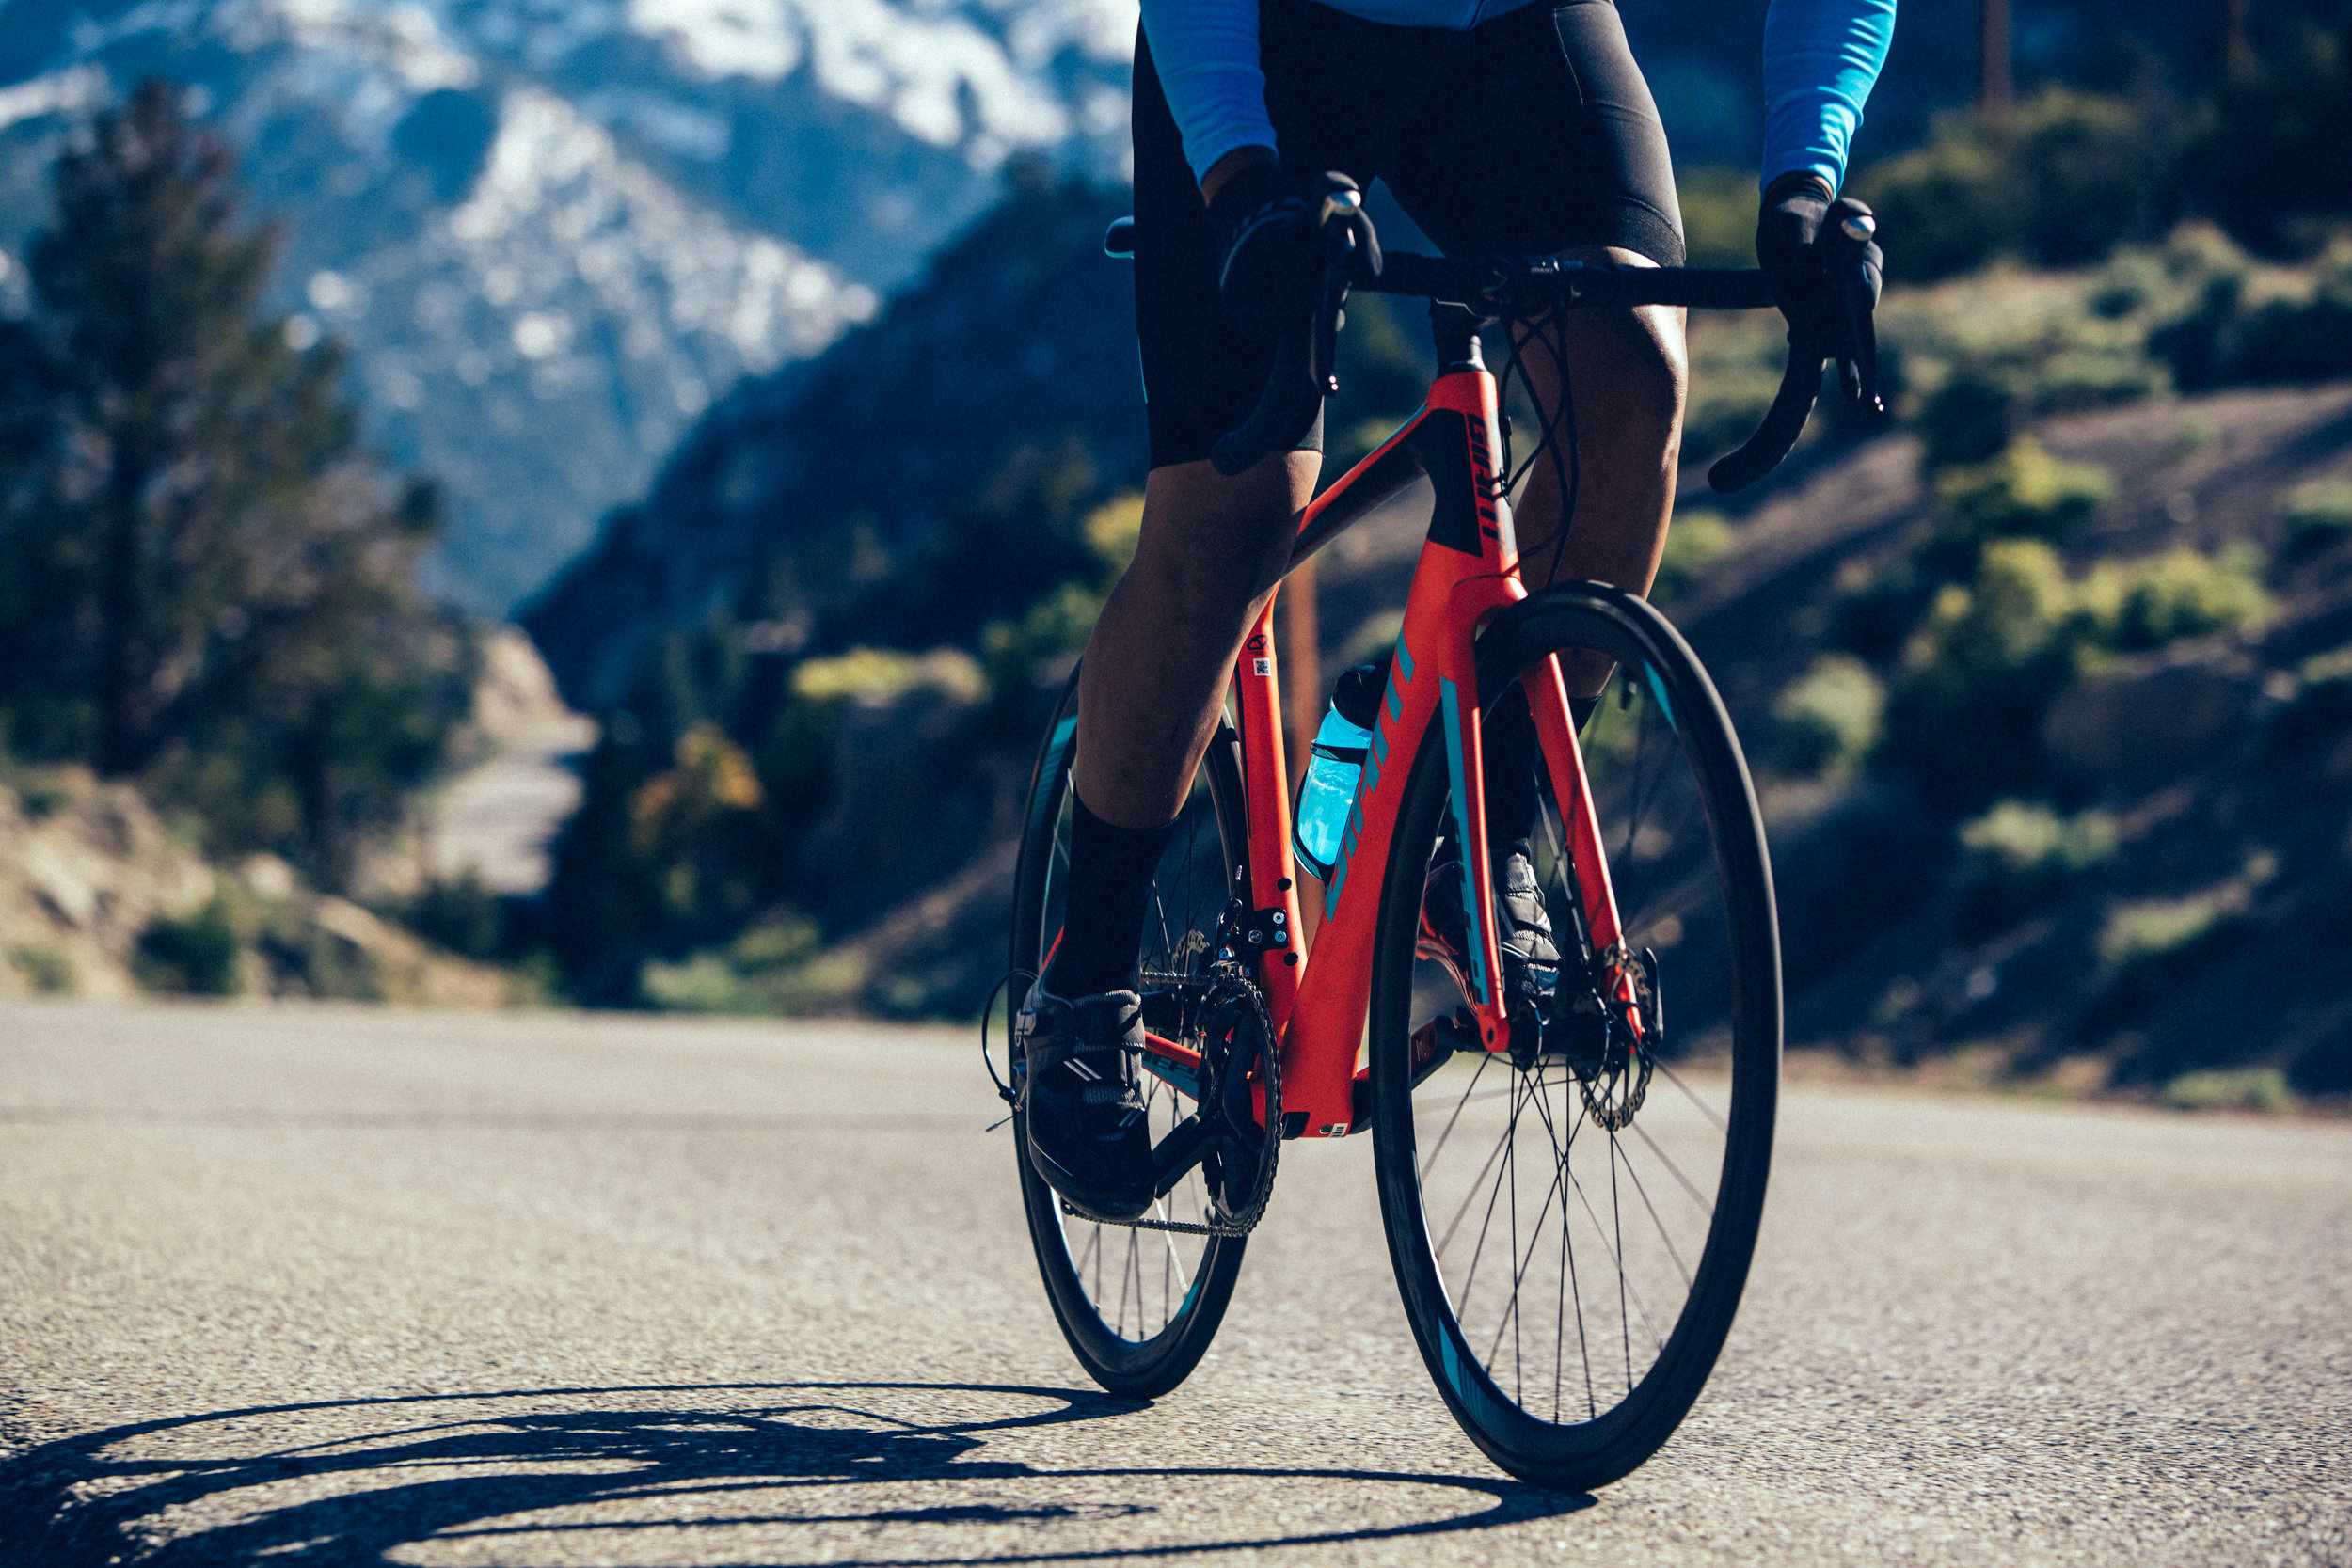 Giant Bikes - AS THE WORLD'S LARGEST PRODUCER OF HIGH-QUALITY BIKES, GIANT STRIVES TO CREATE THE ULTIMATE CYCLING EXPERIENCE FOR ALL RIDERS. WHATEVER STYLE OF RIDING YOU WANT TO DO, THEY HAVE A BIKE TO FIT YOUR NEEDS AND HELP YOU ACHIEVE YOUR CYCLING GOALS.